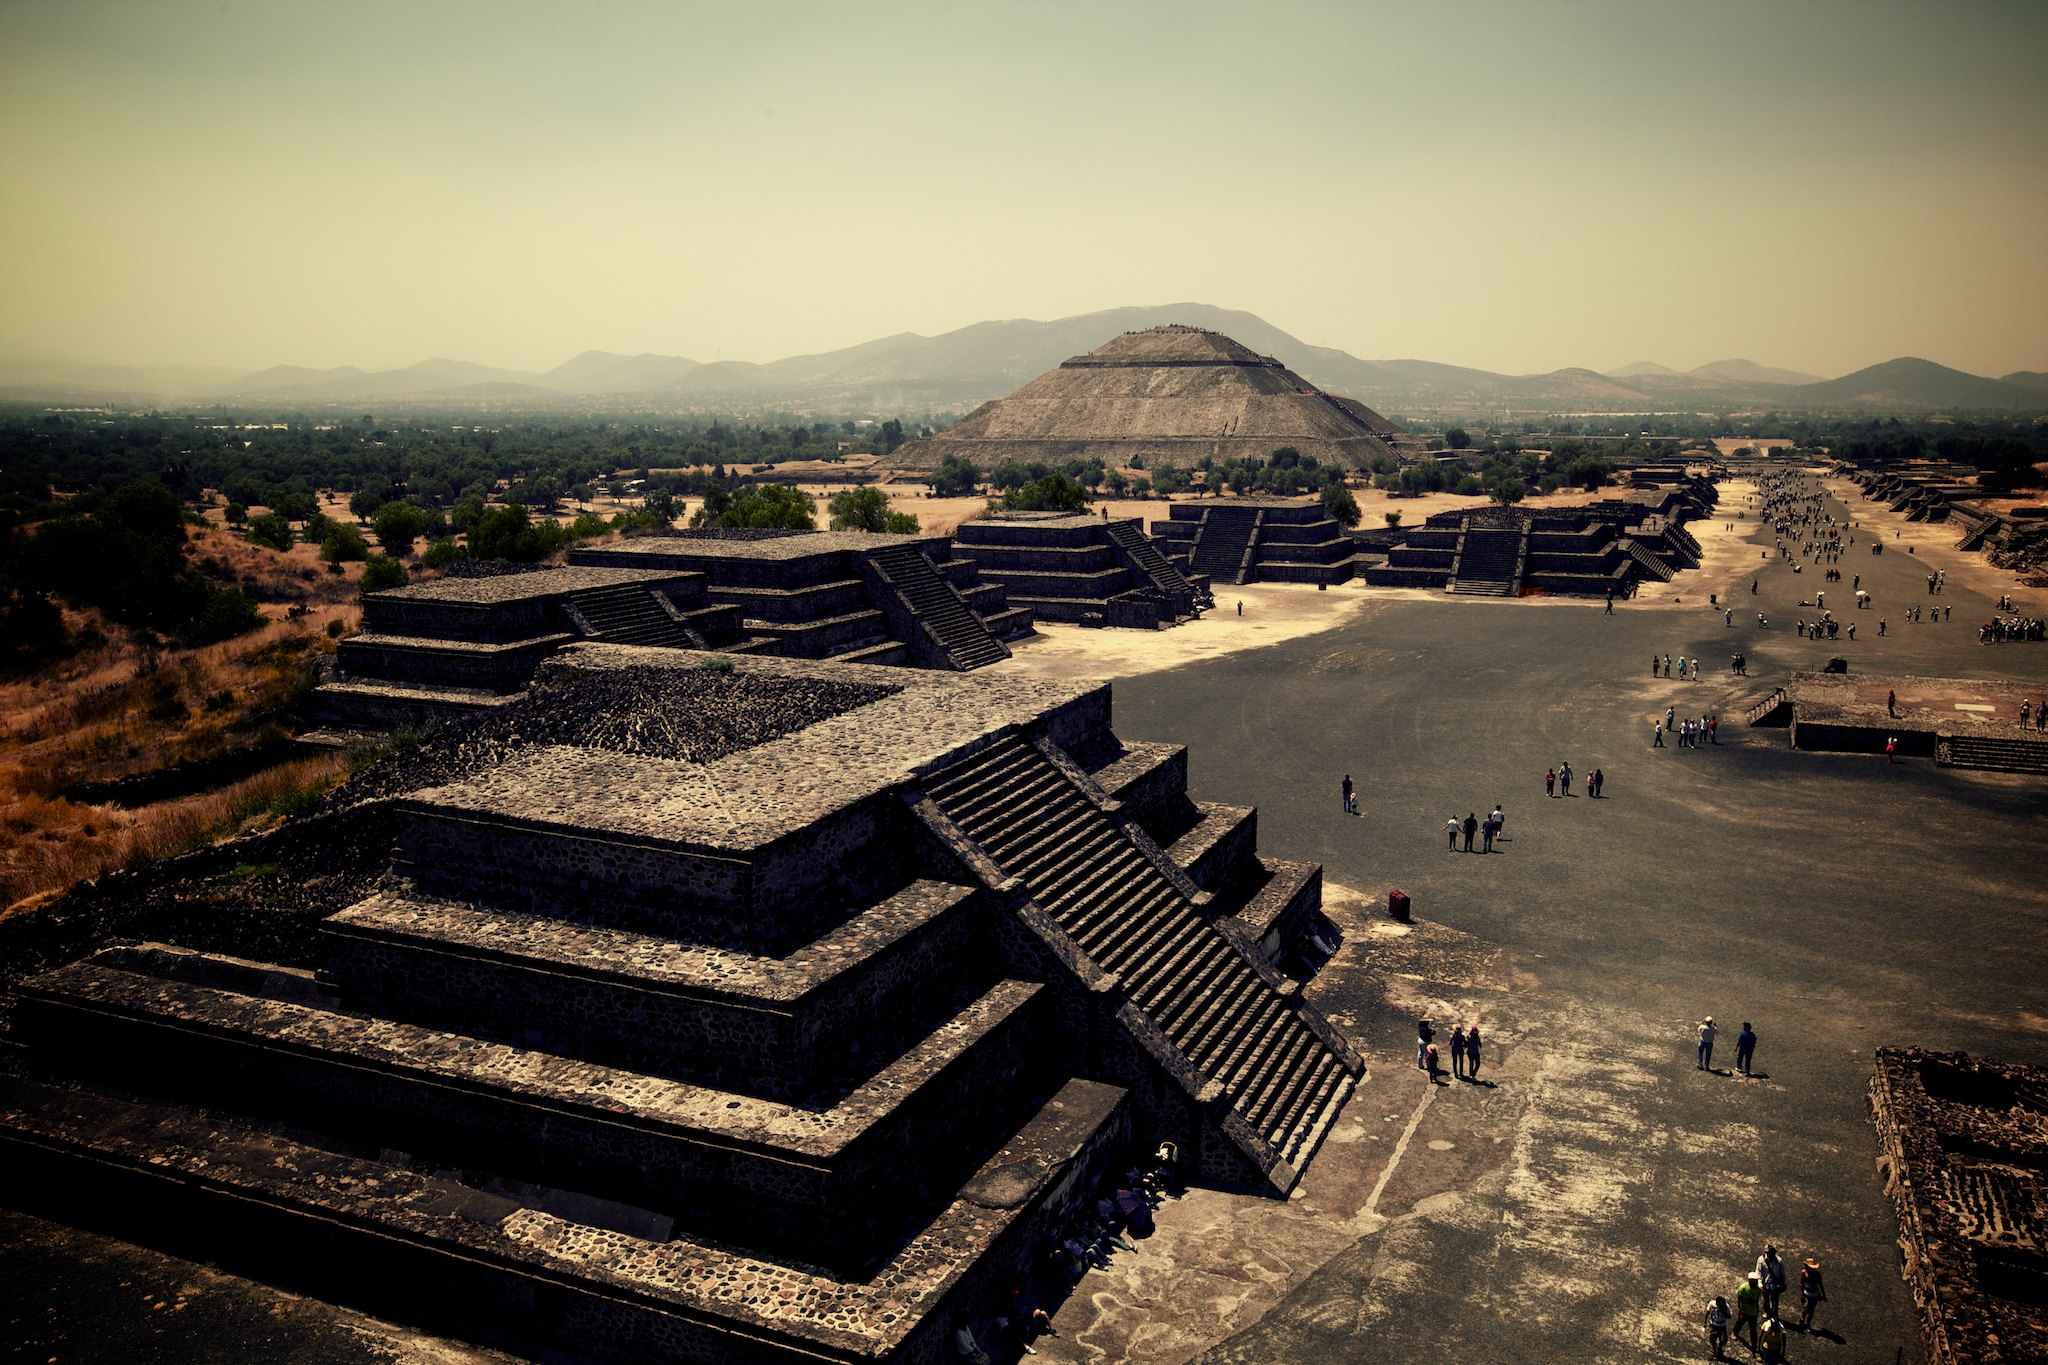 teotihuacan-mexico-city-mexico-1.jpg